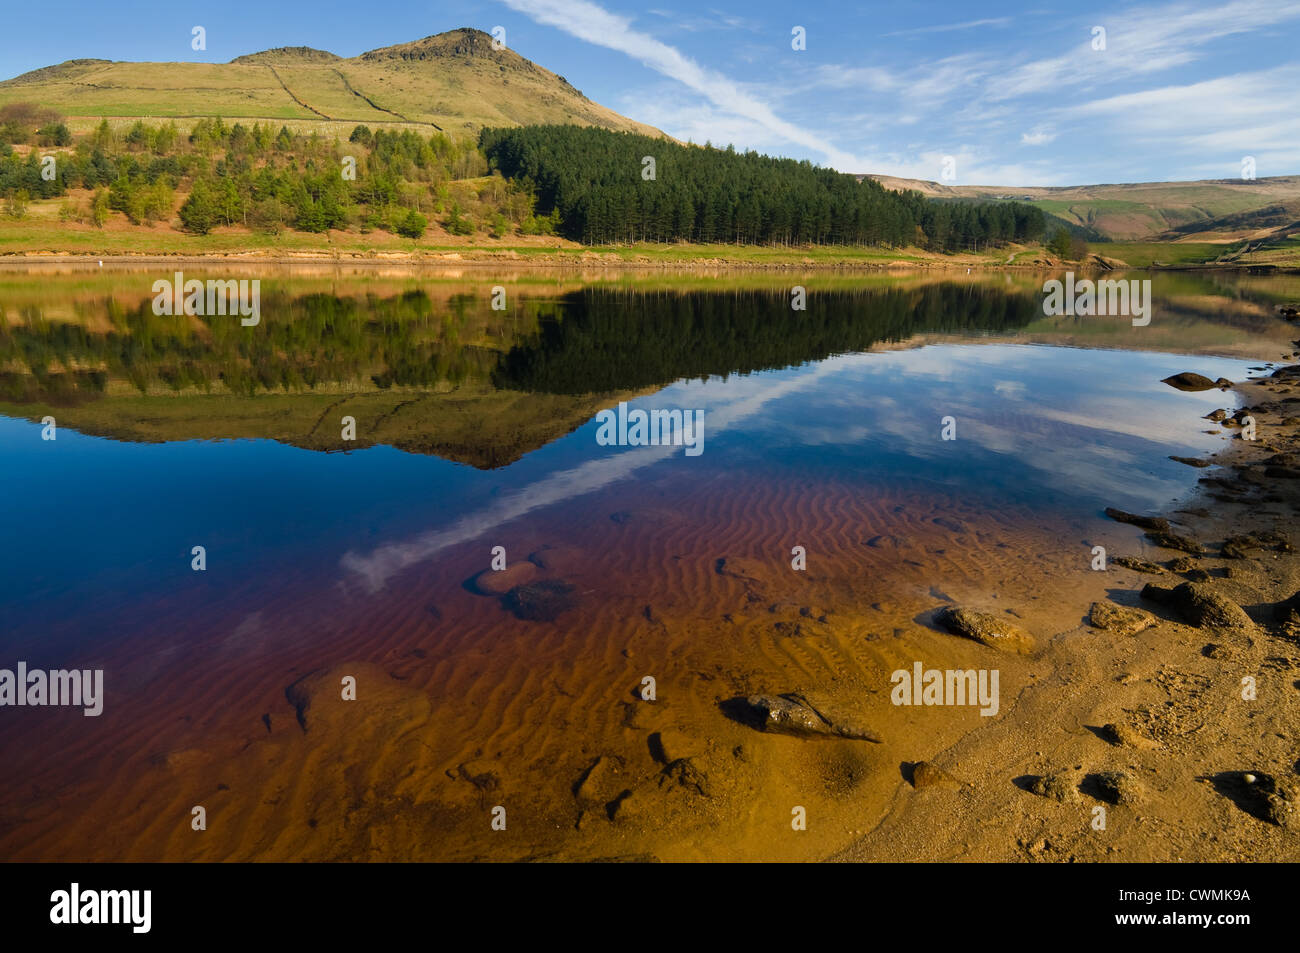 Landscape at Dove stone reservoir in Peak district featuring hill and water reflection - Stock Image